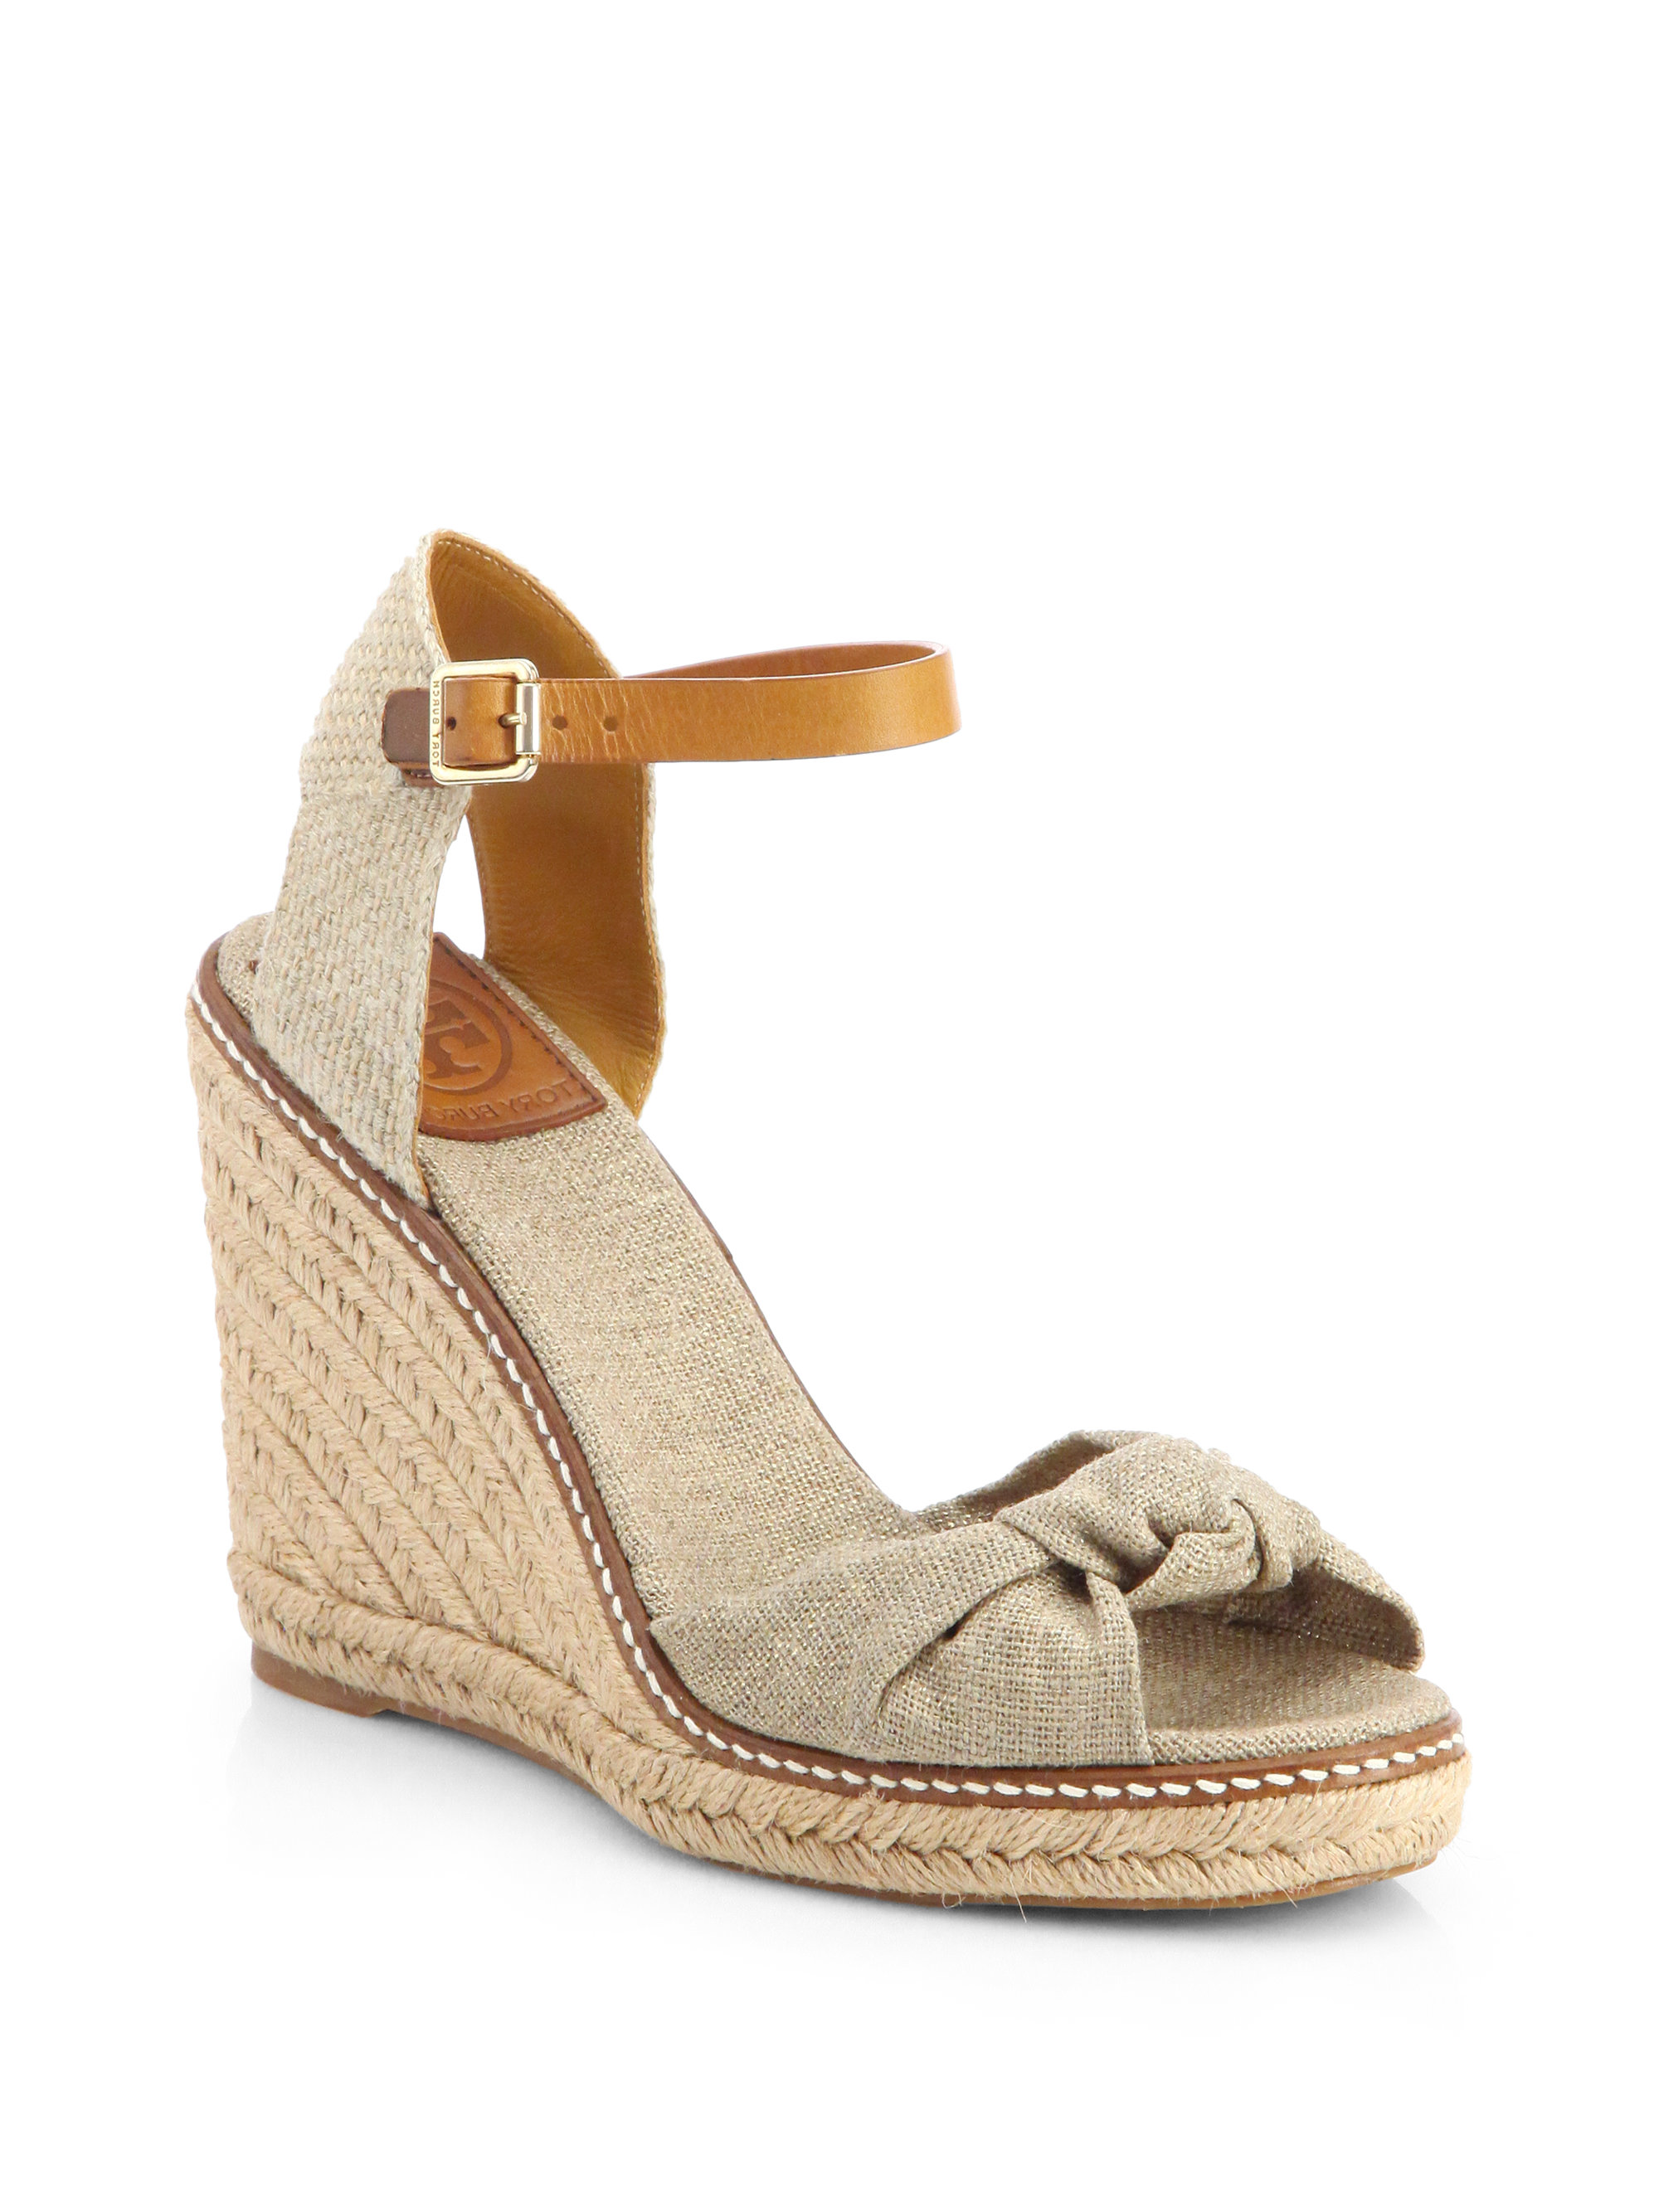 4790c0f28bd463 Lyst - Tory Burch Macy Linen Espadrille Wedge Sandals in Natural